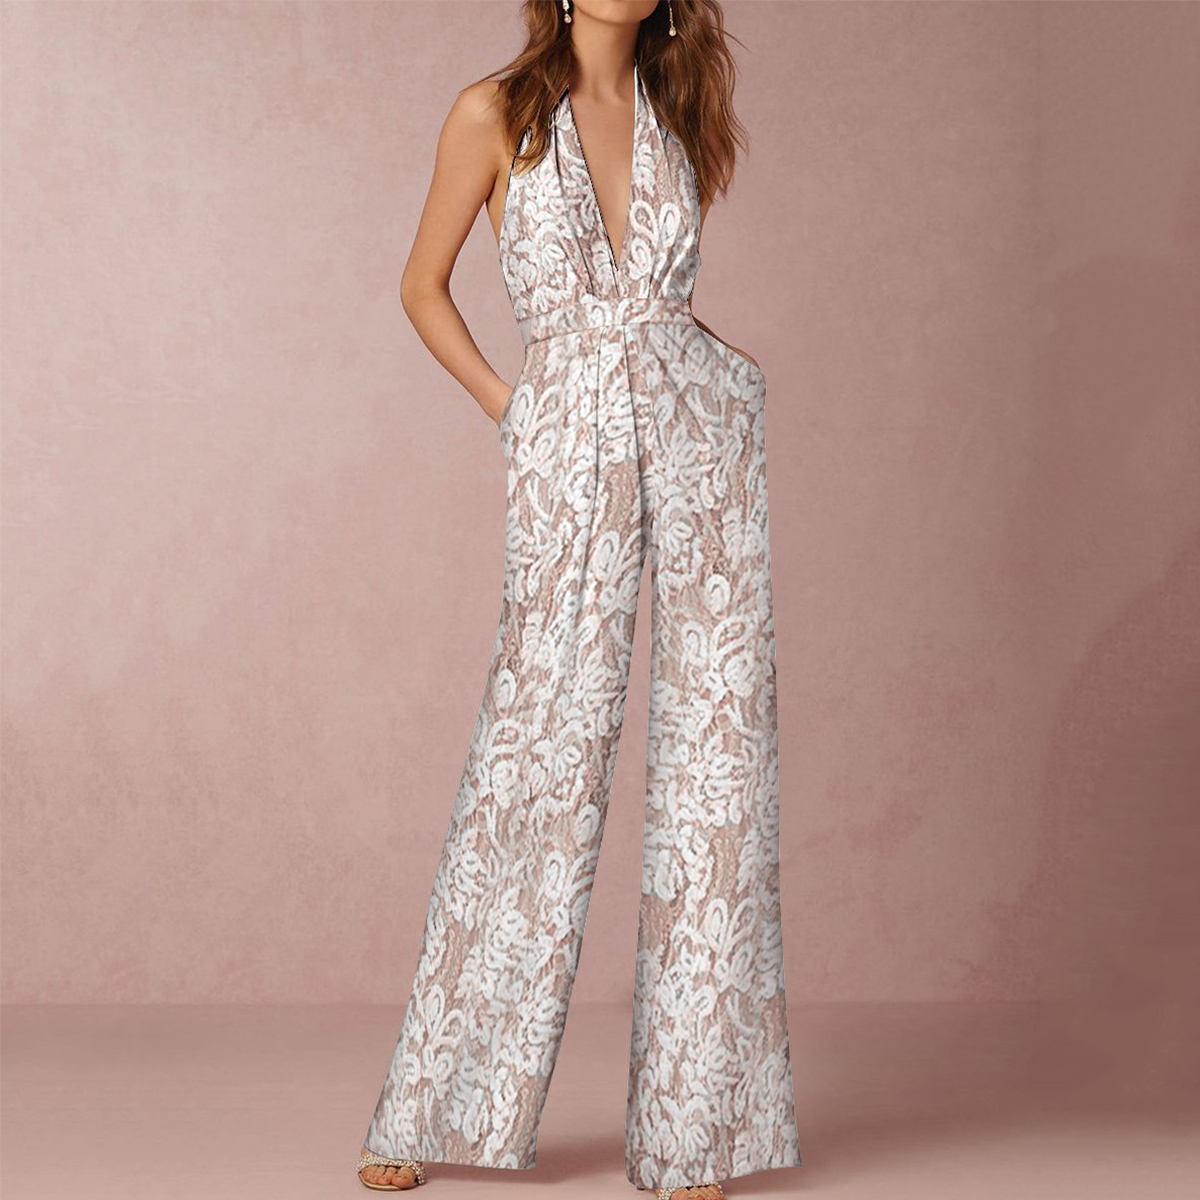 cc51be44707 Sexy Halter Neck Backless Floral Lace Jumpsuit – PINKSIA